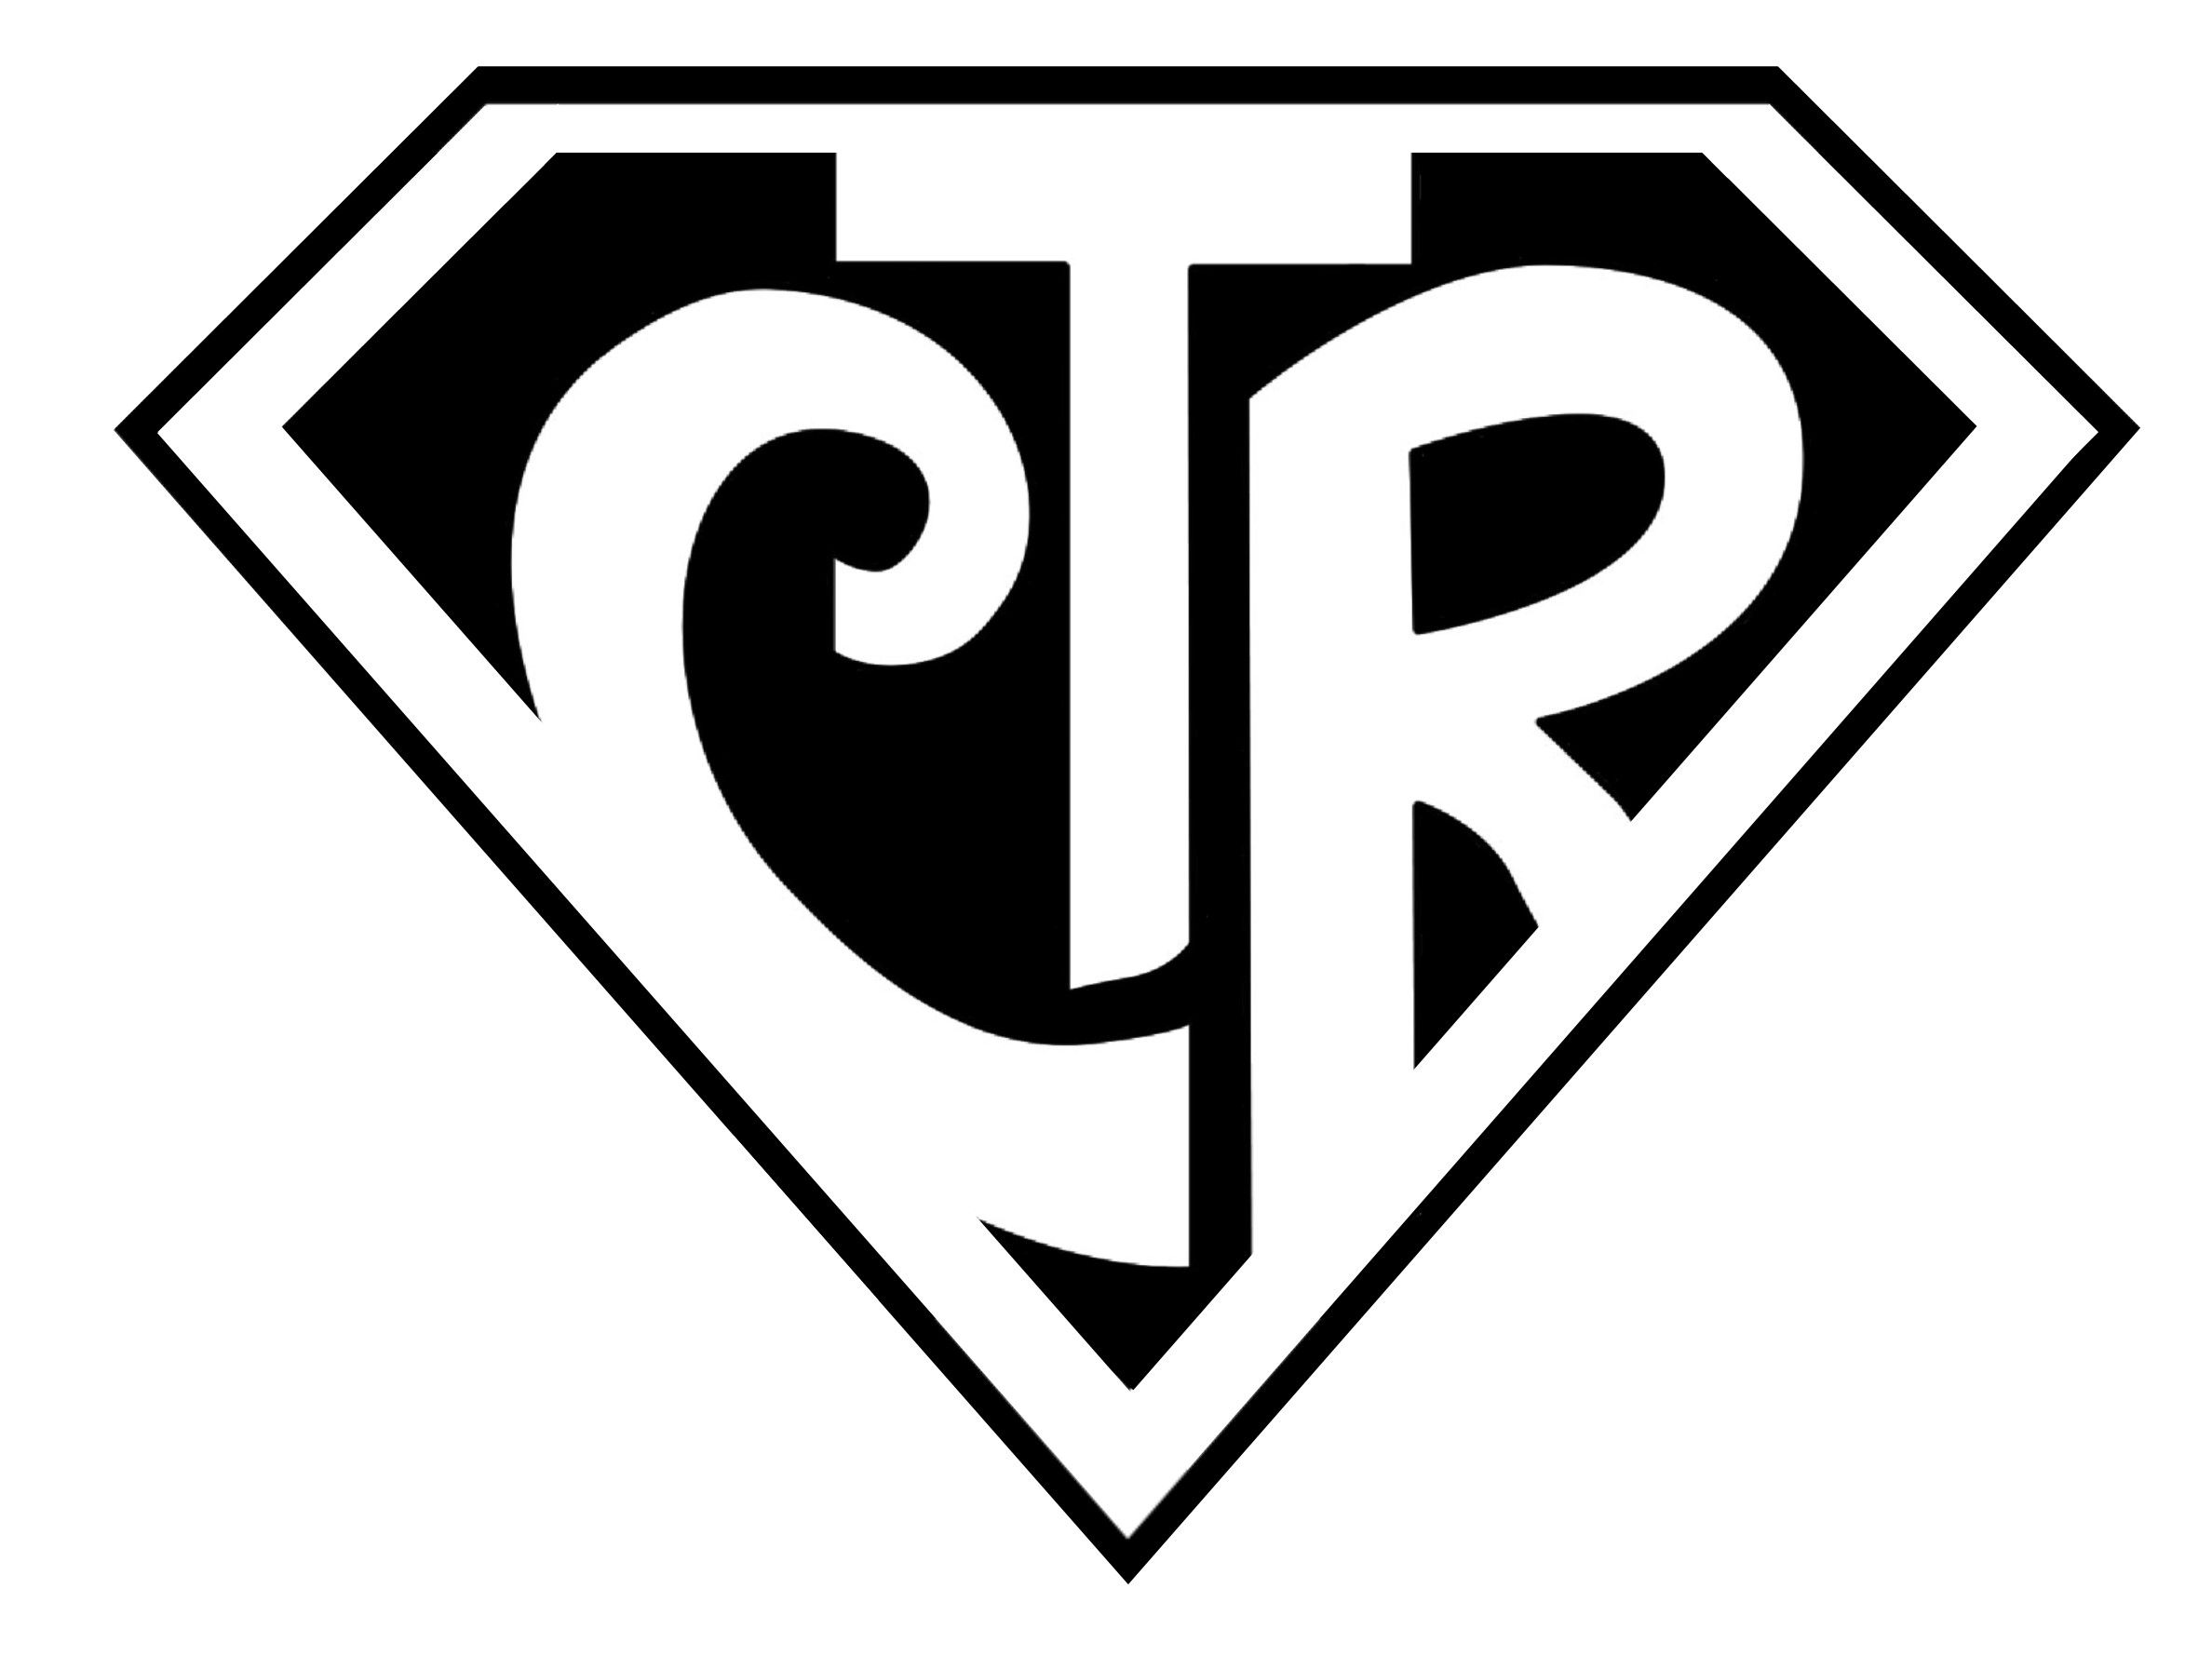 Ctr Font From Lds Ctr Ring On Superman Logo Shape By